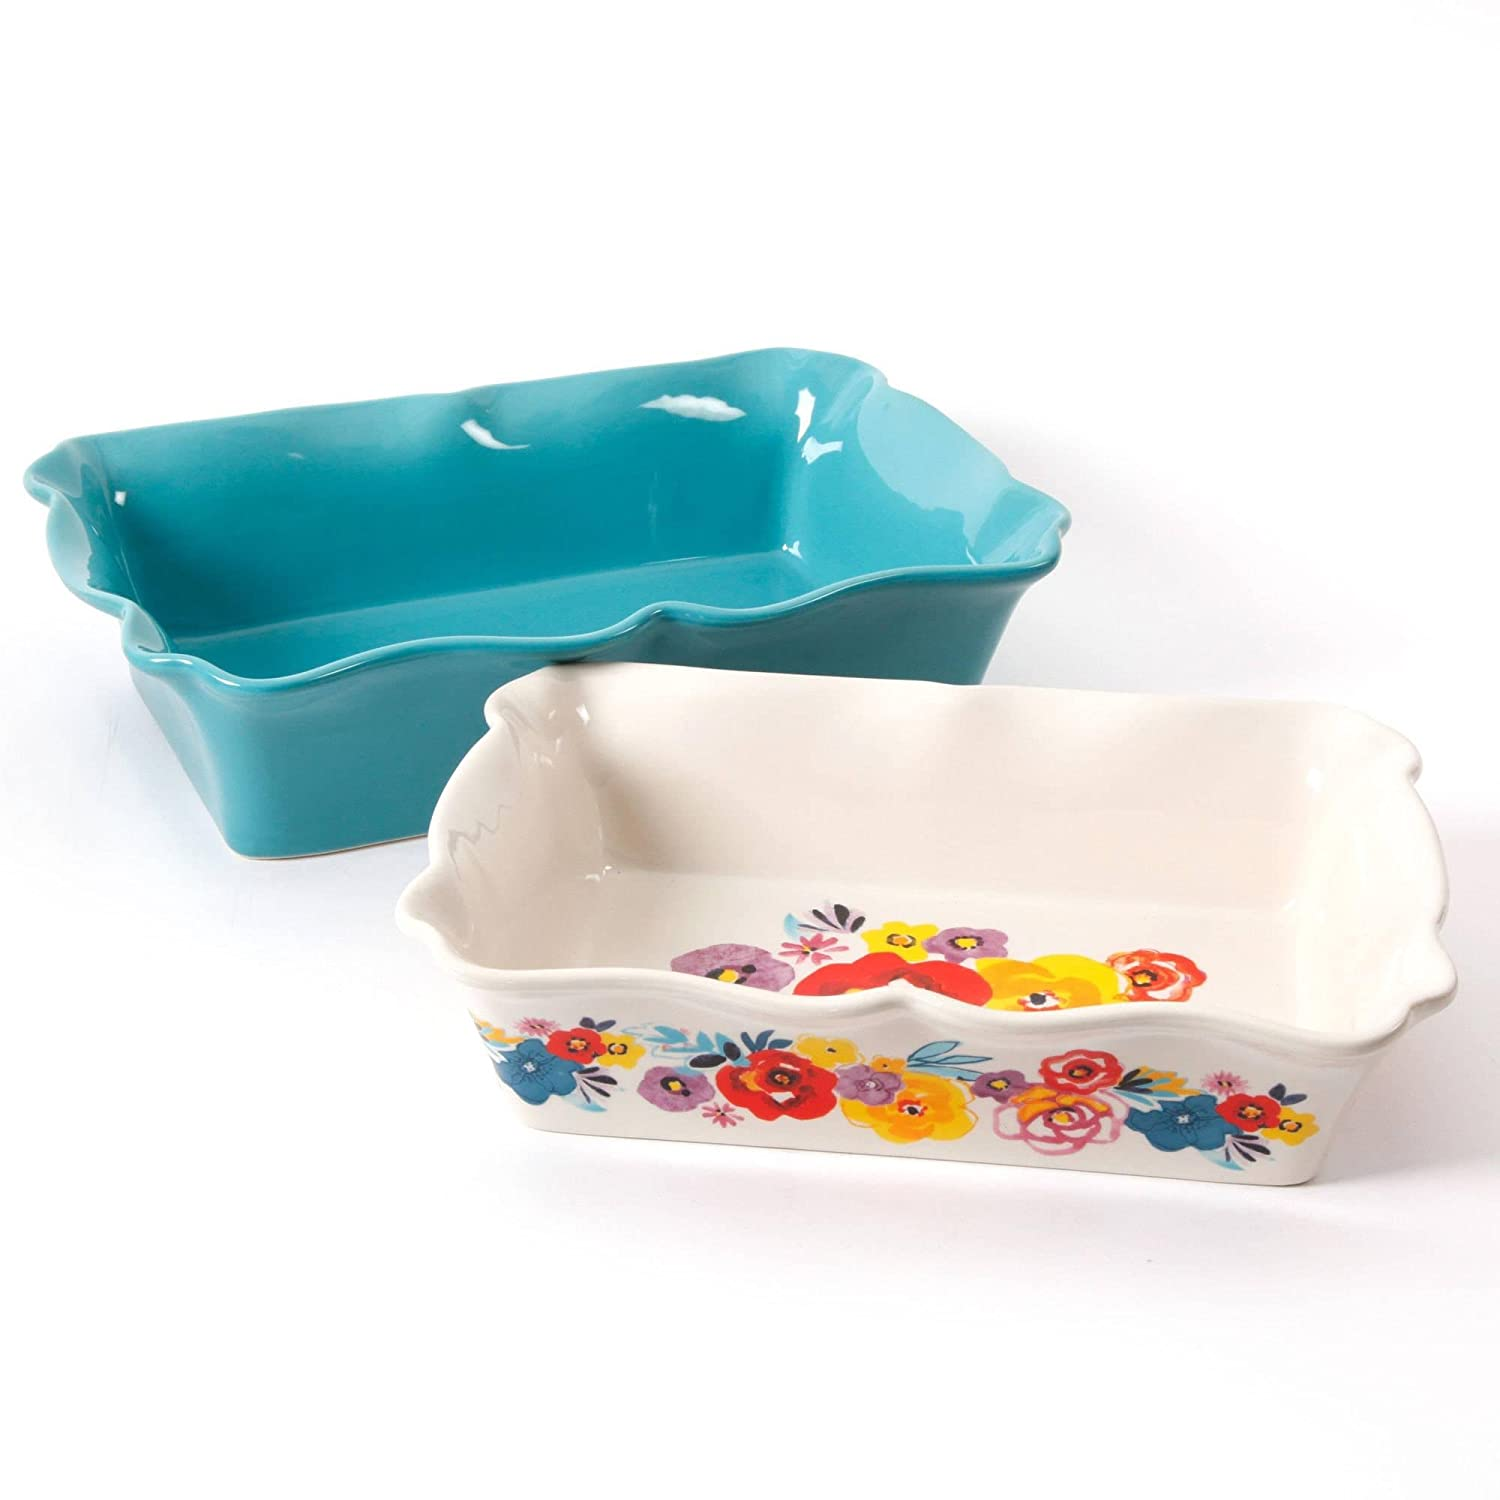 The Pioneer Woman Flea Market 2-Piece Decorated Rectangular Ruffle Top Ceramic Bakeware Set | amazon.com